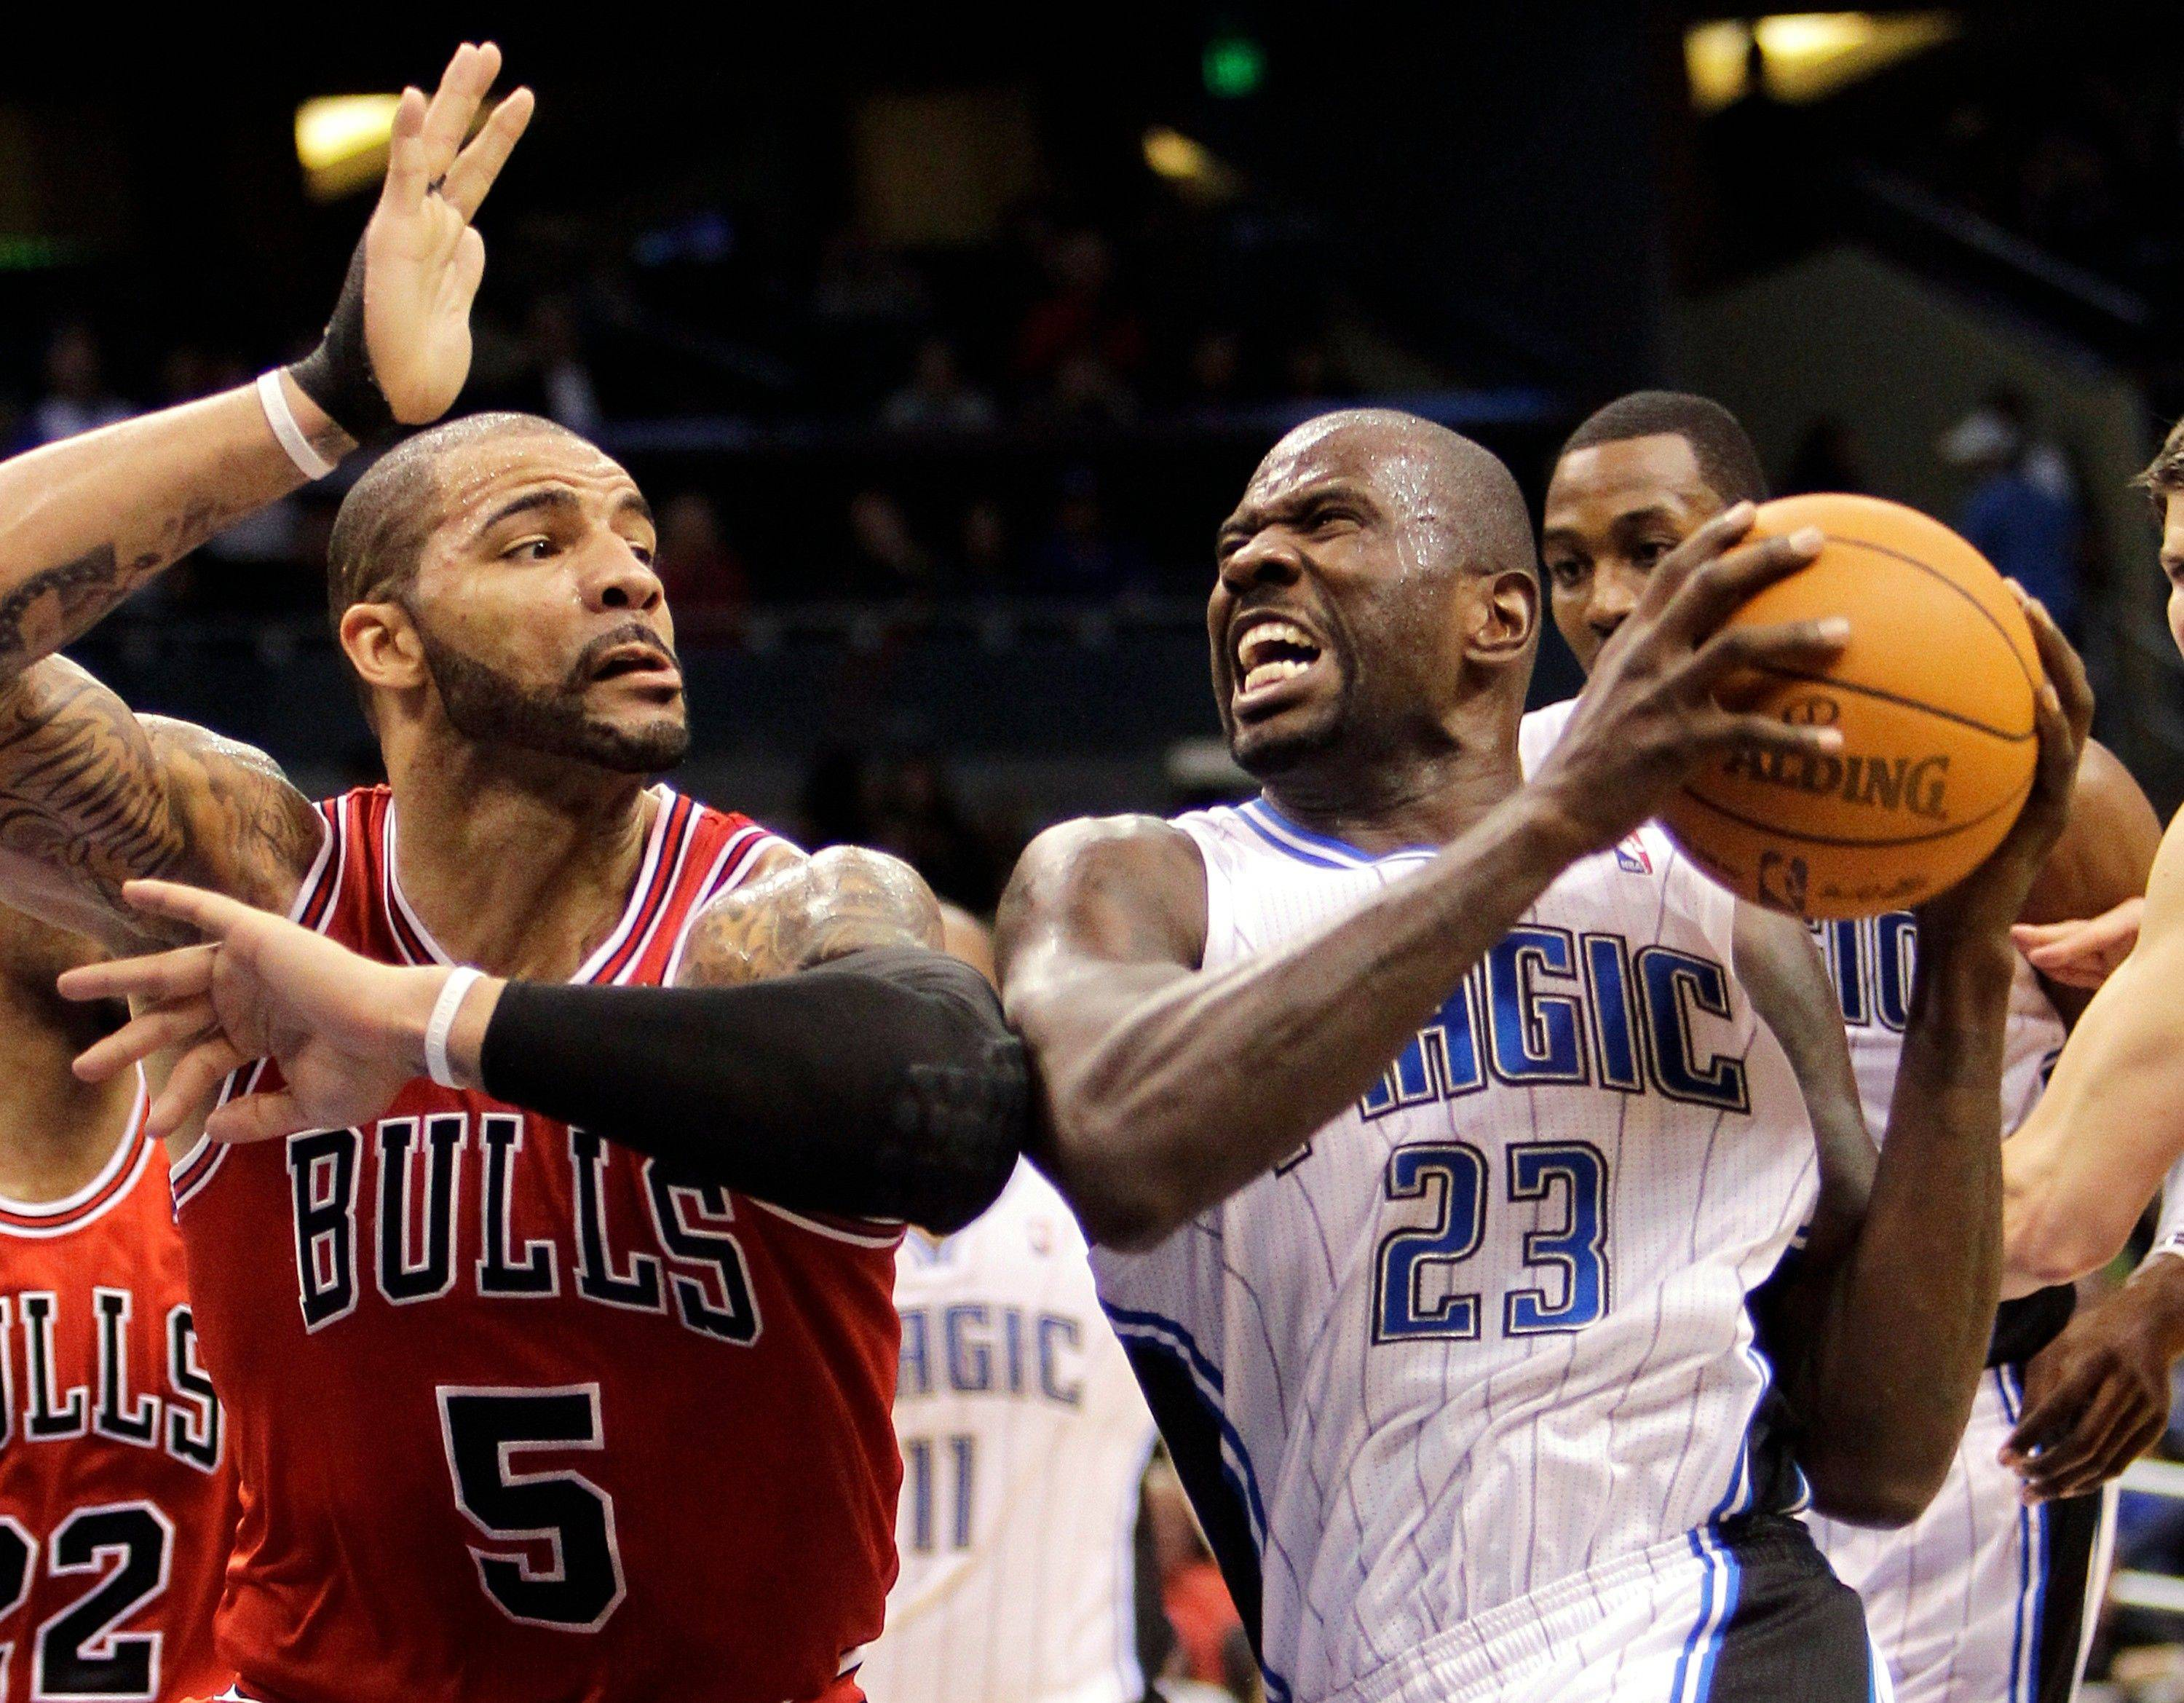 The Orlando Magic's Jason Richardson tries to make his way to the basket past the Bulls' Carlos Boozer earlier this season.